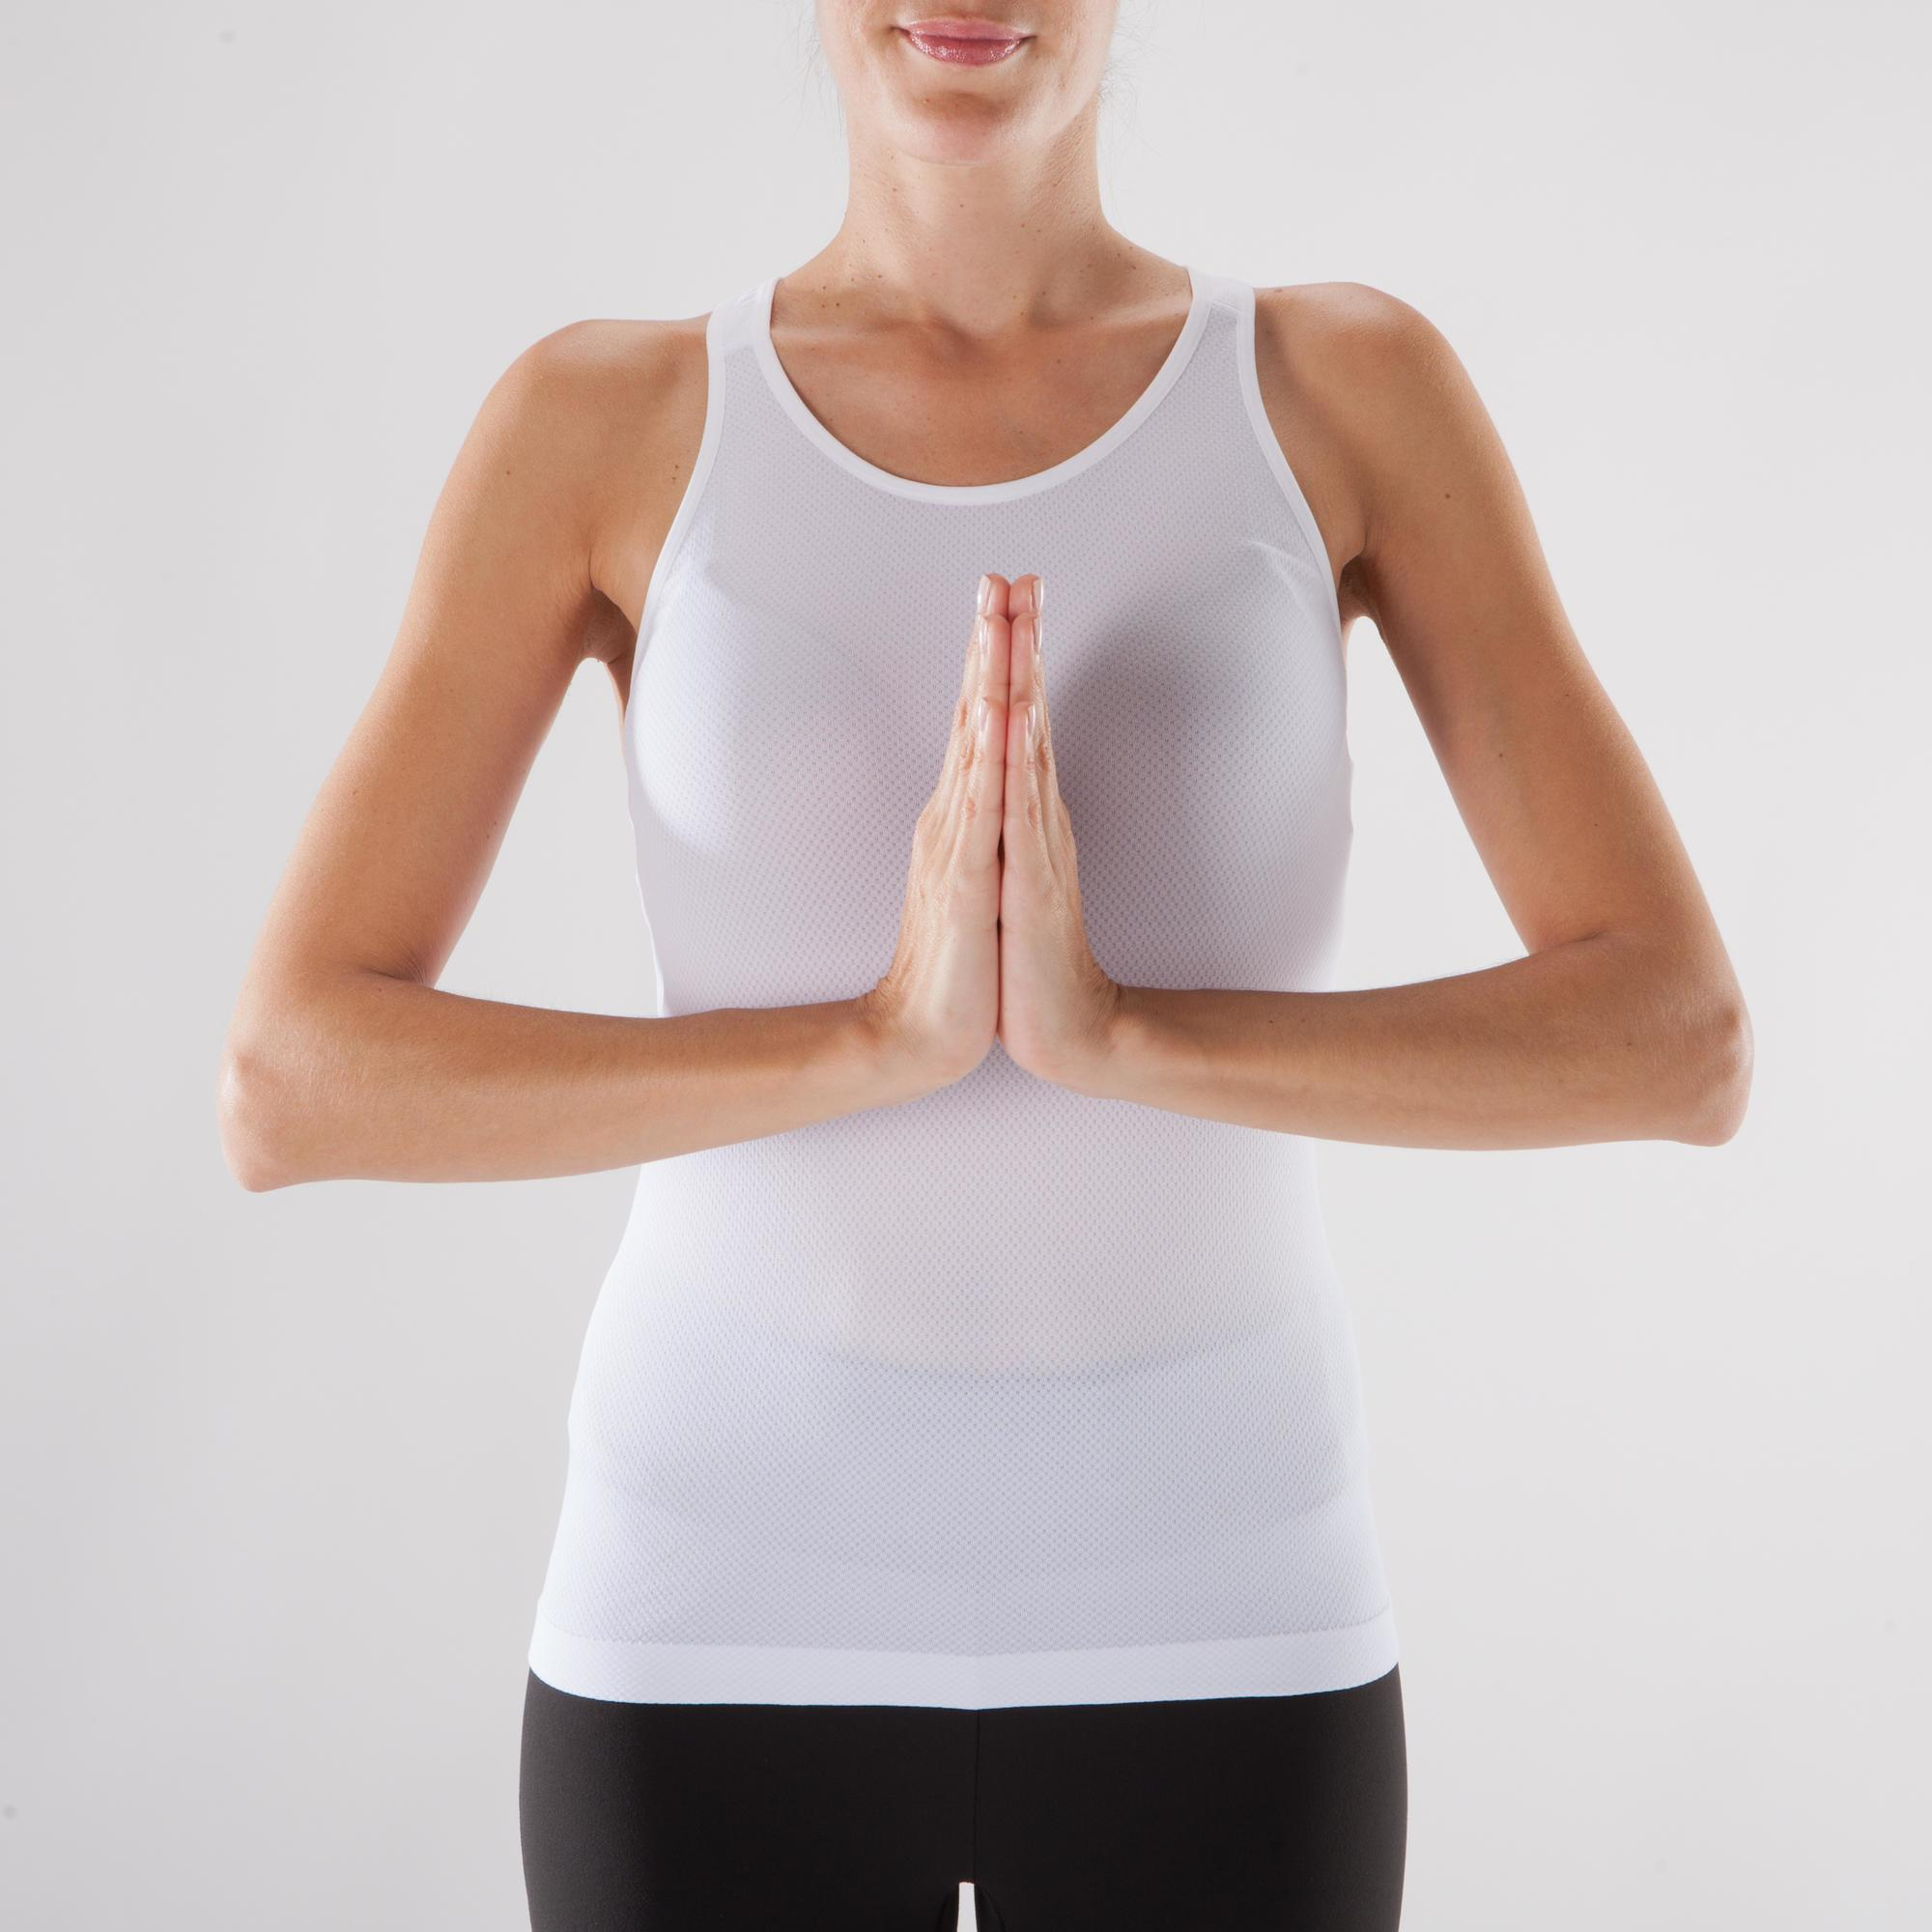 Women's Seamless Dynamic Yoga Tank Top